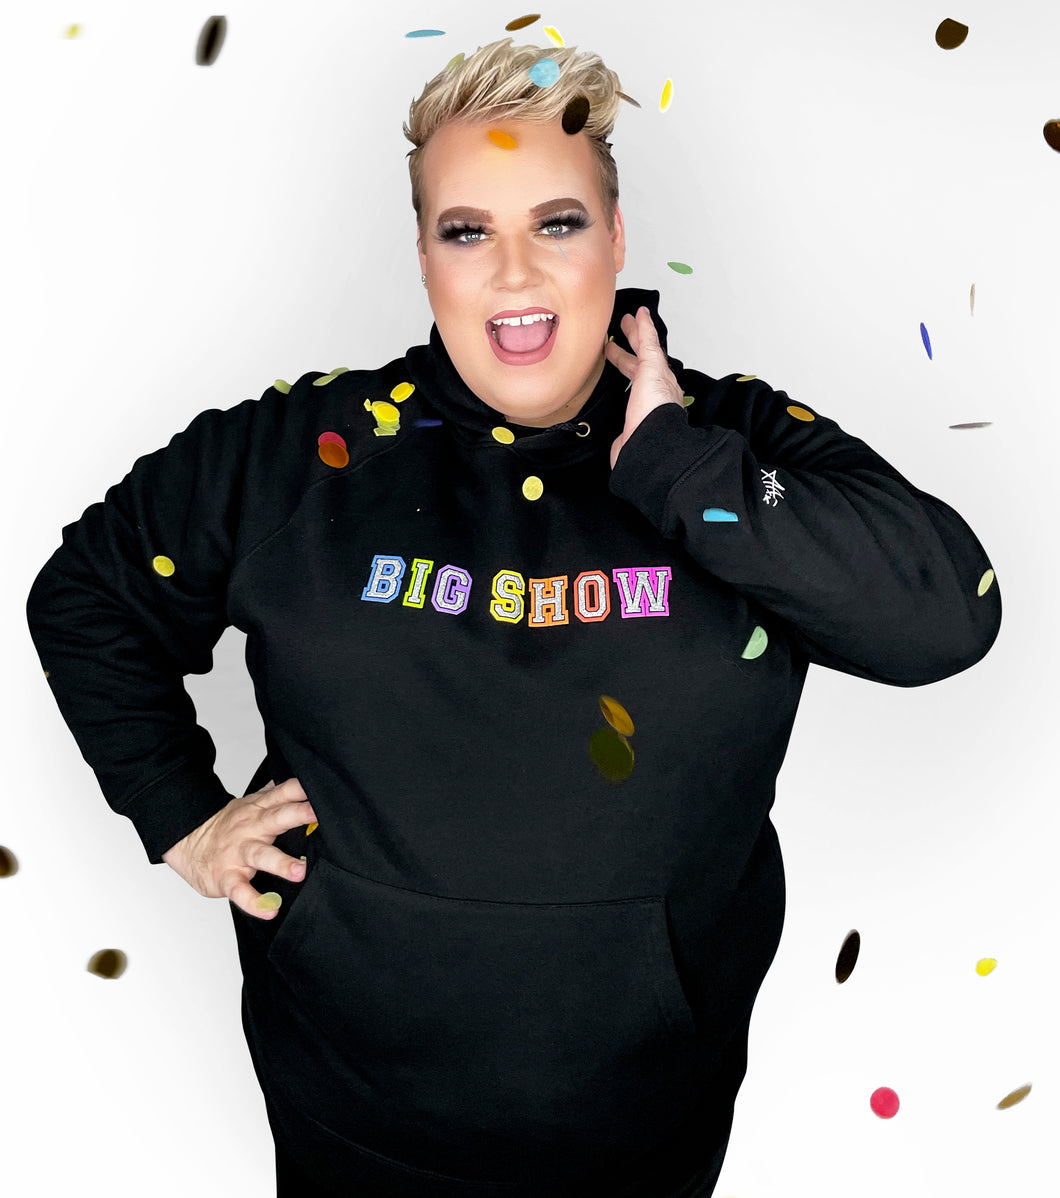 Alright Hey! 'Big Show' Hoodie